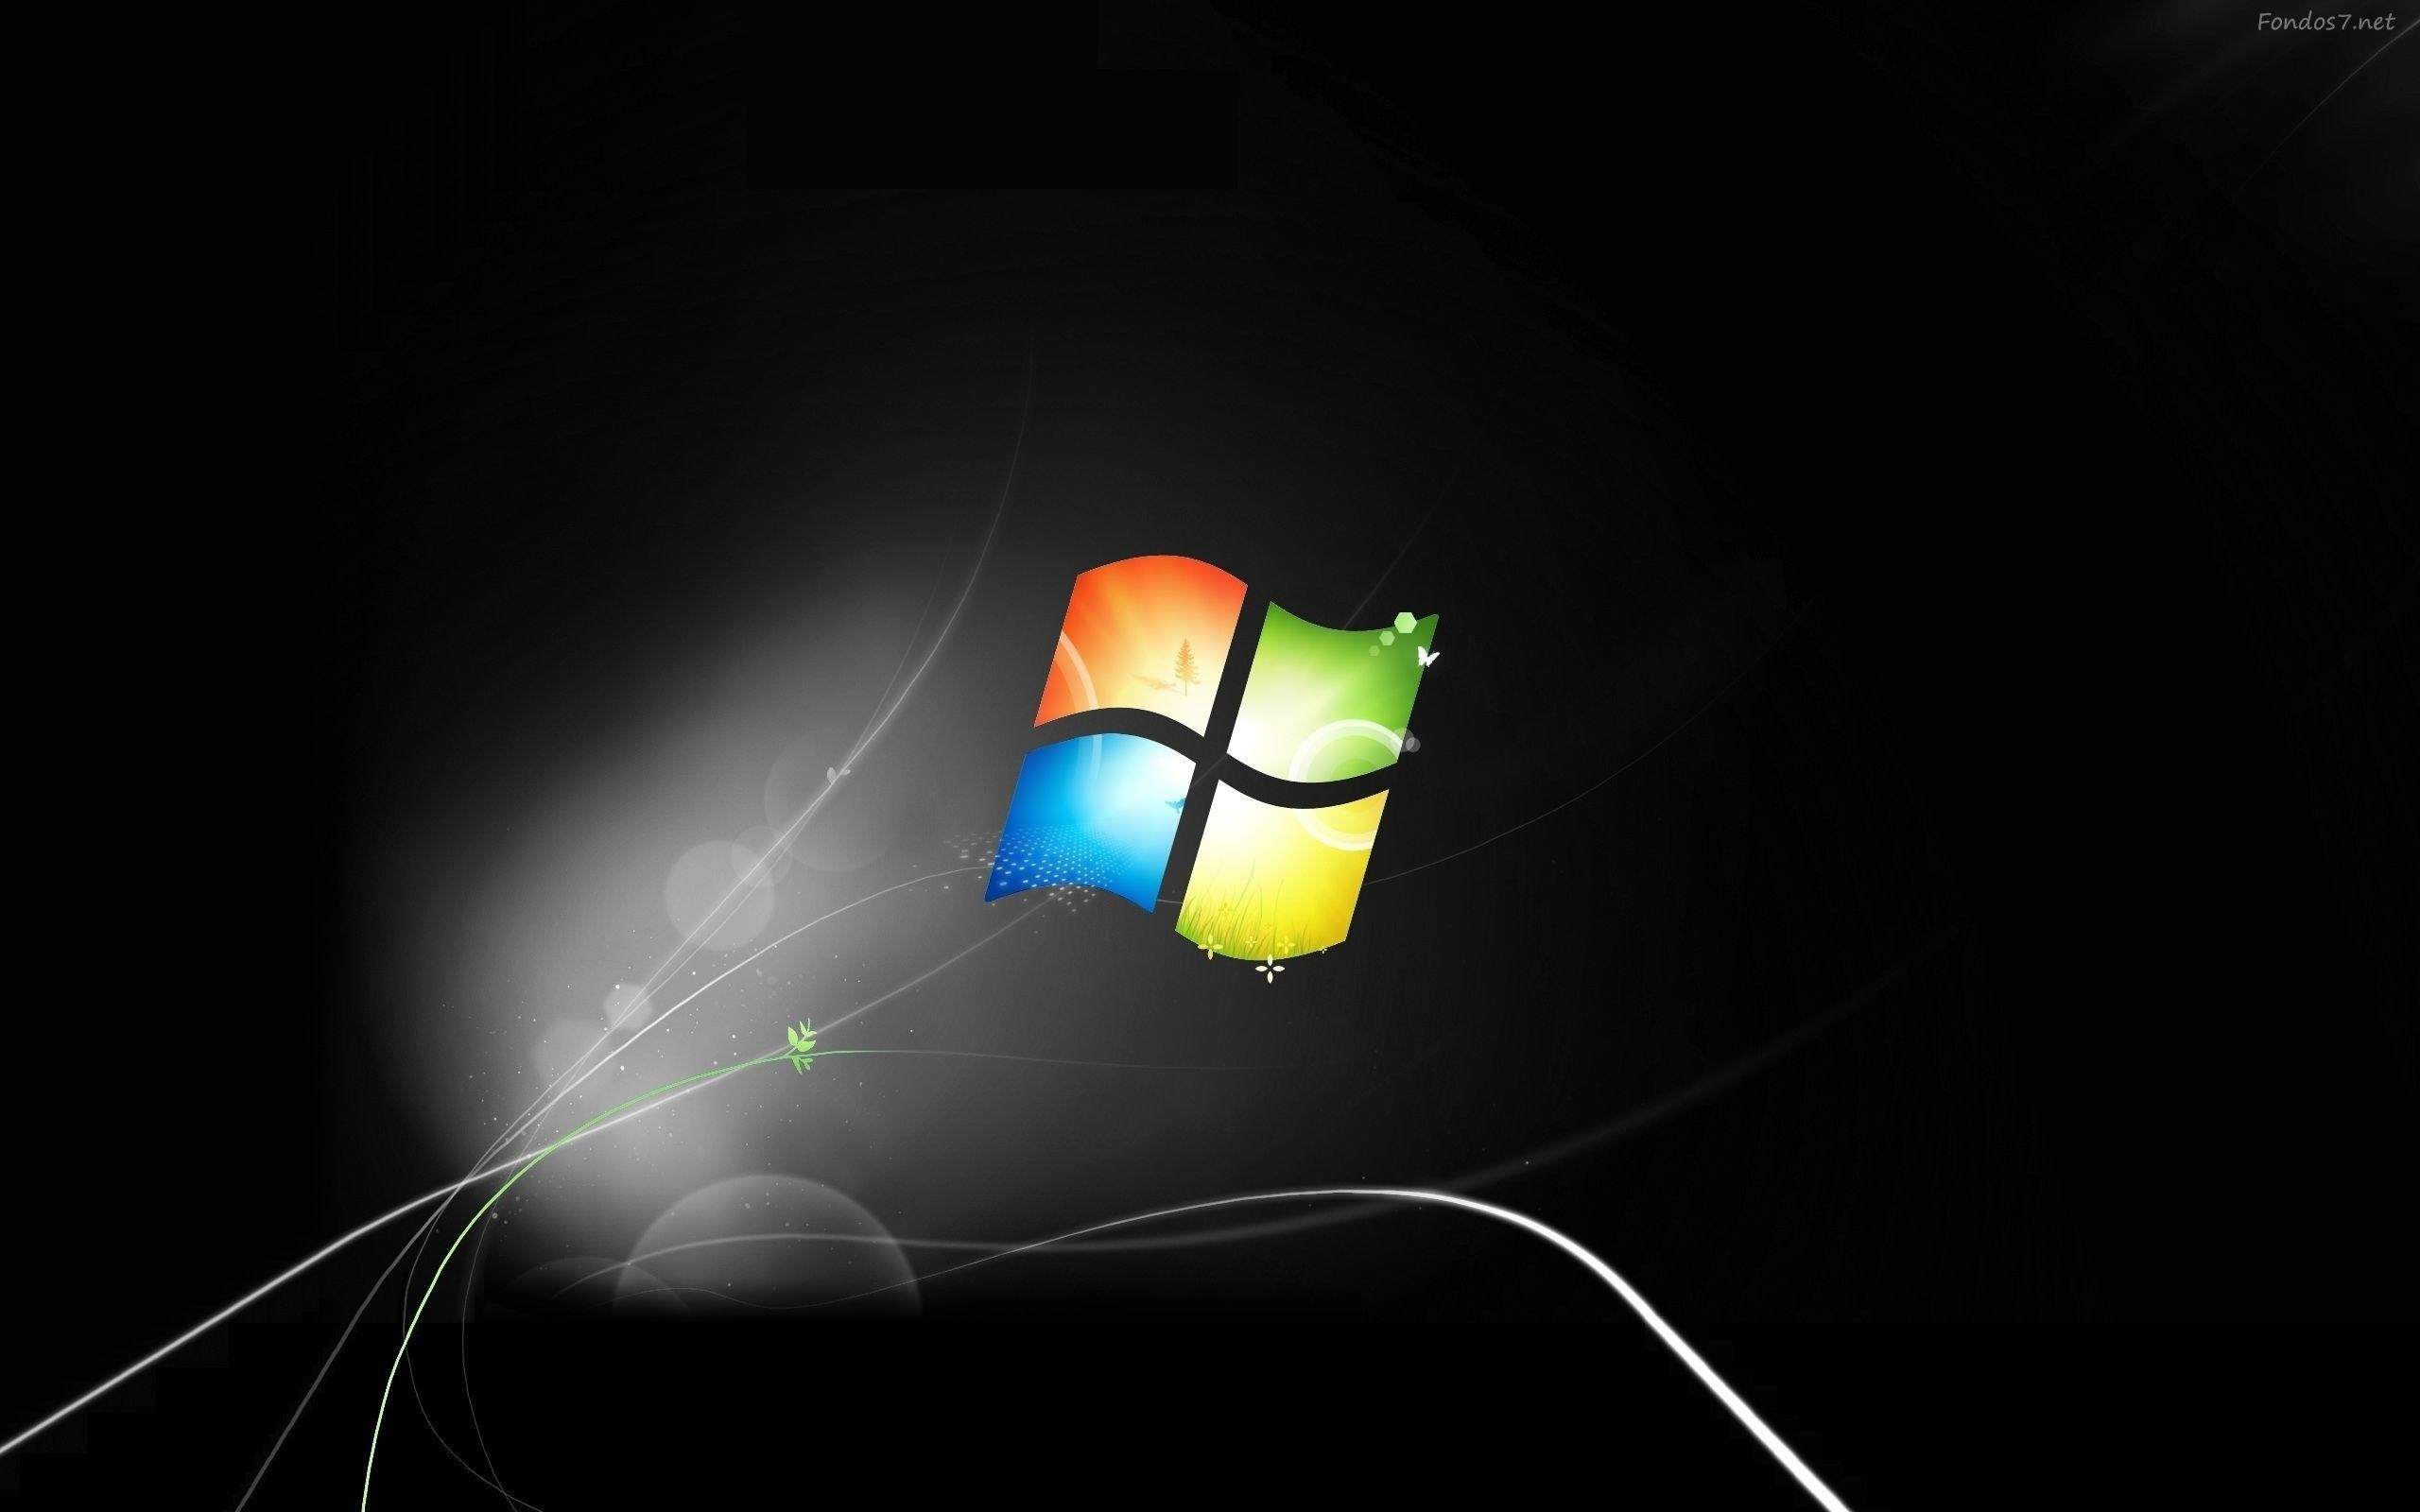 windows 7 dark wallpaper (68+ images)